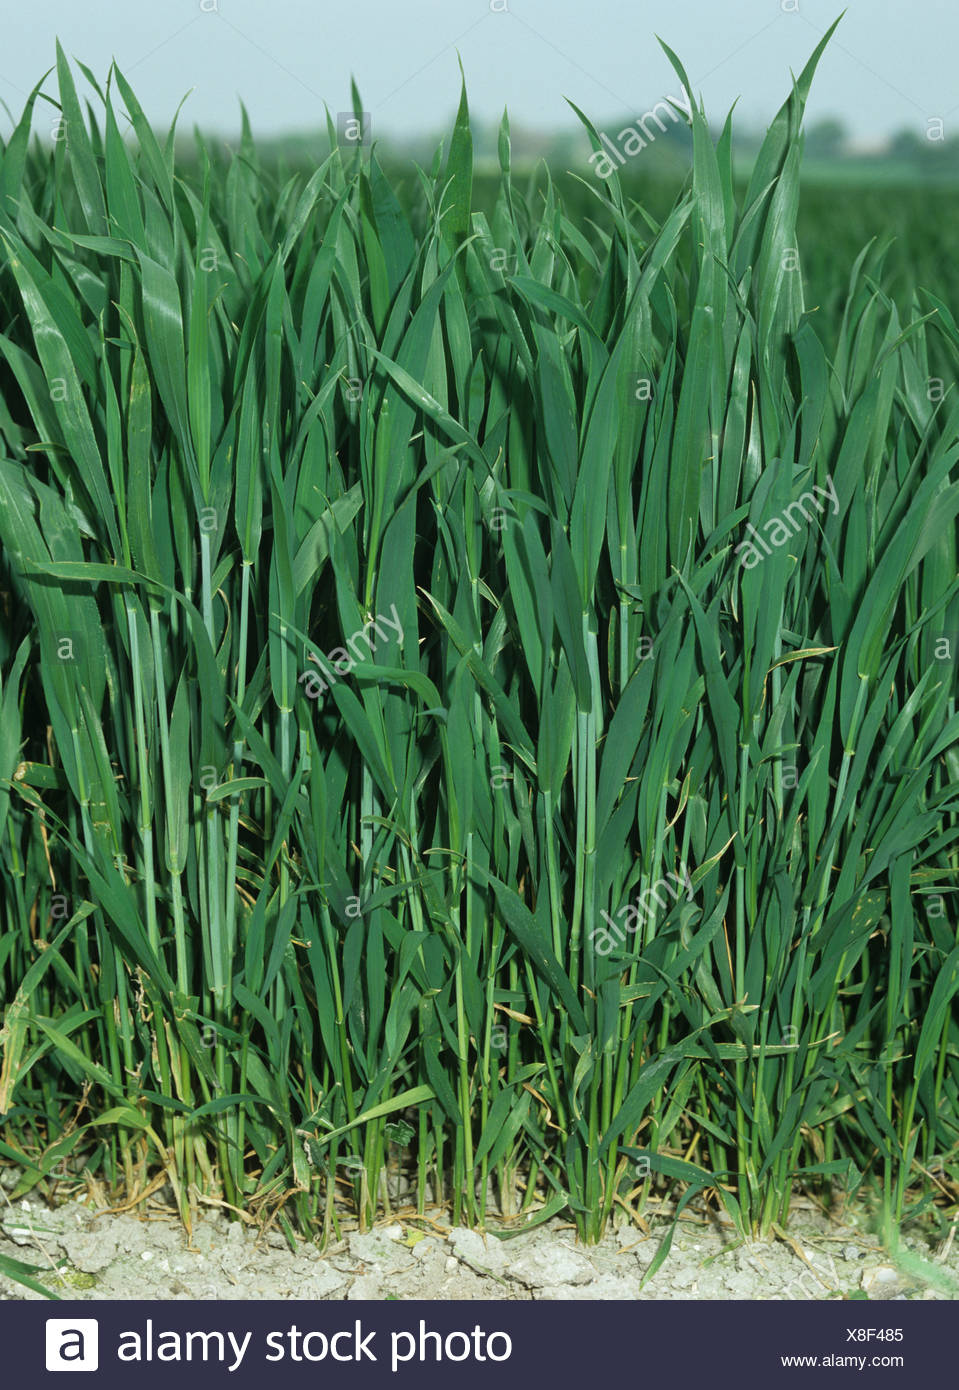 Wheat plants in a crop at growth stage 35 37 - Stock Image